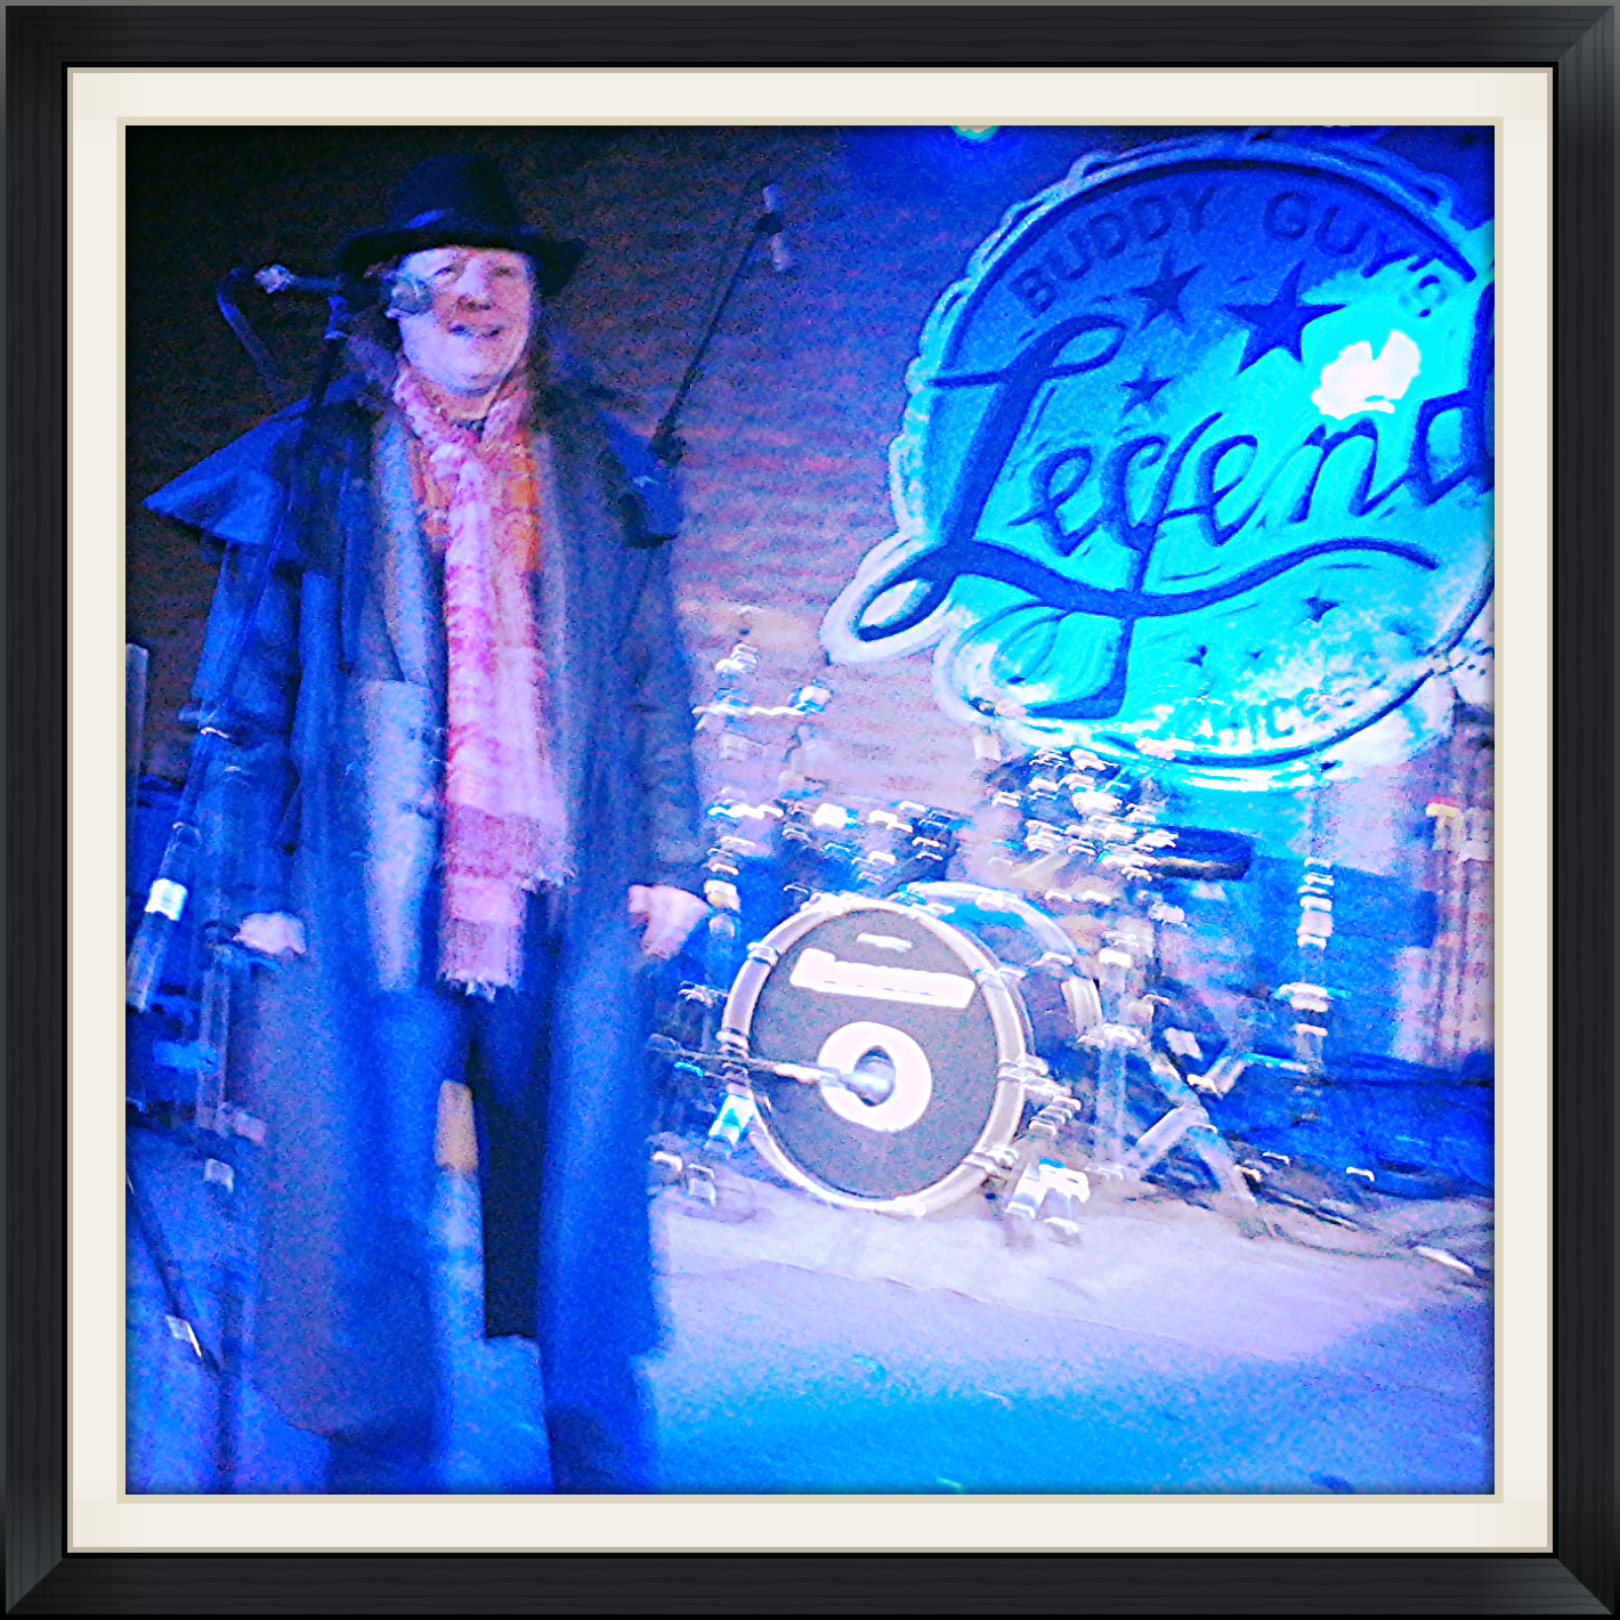 KittC Delaney Sings At Buddy Guys Club /Legends in Chicago